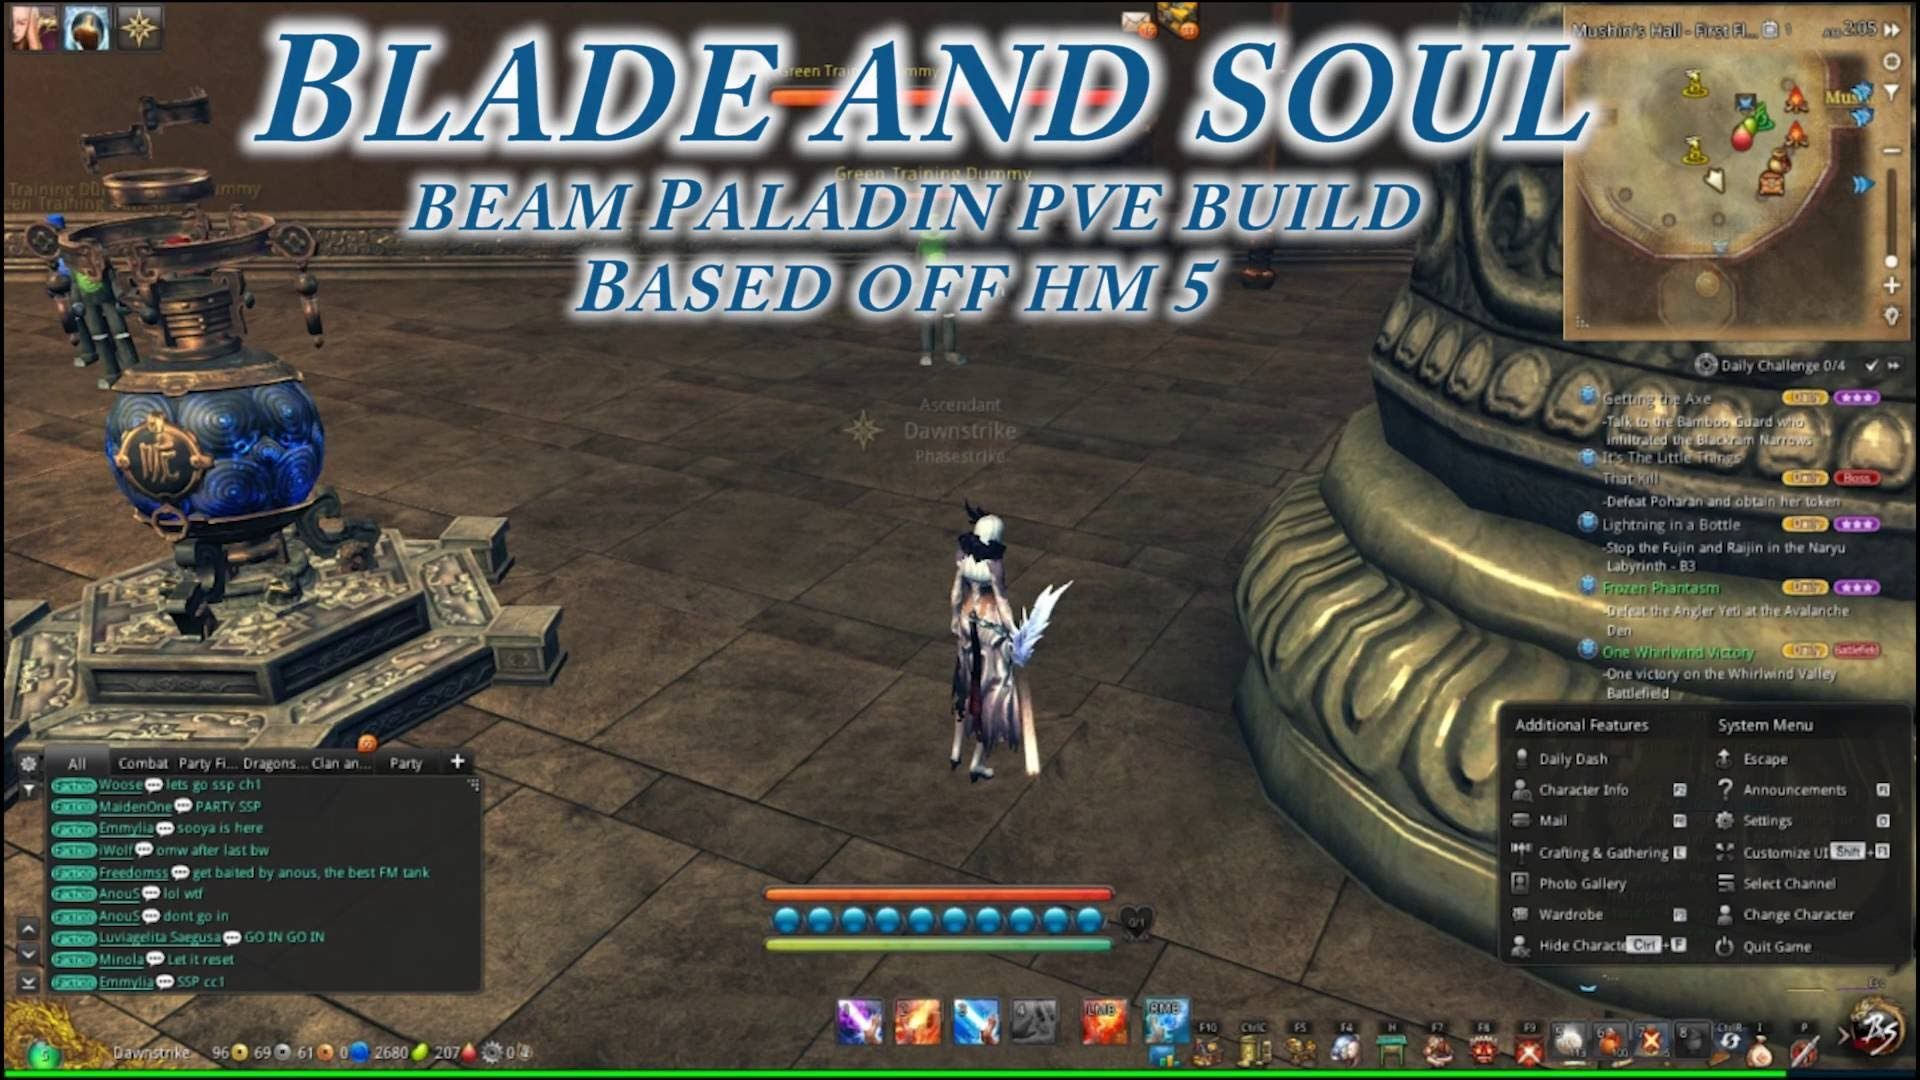 Blade And Soul Forcemaster Beam Paladin Build With Images